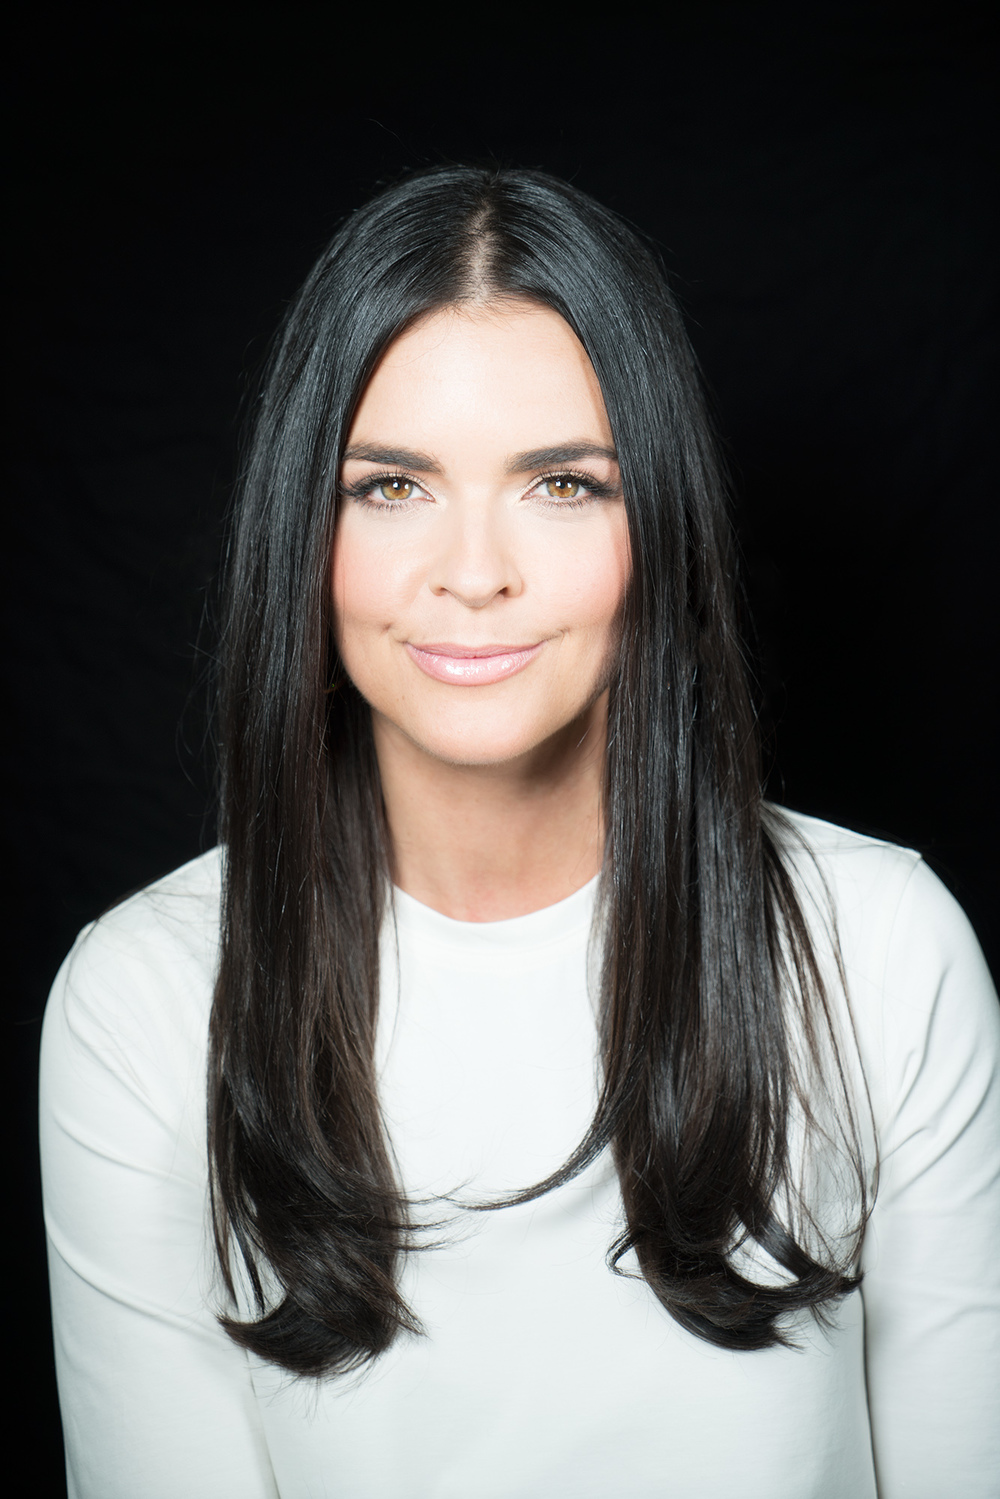 TV Chef, Katie Lee, Outtake from a shoot for  NY Moves  Magazine's Power Women issue